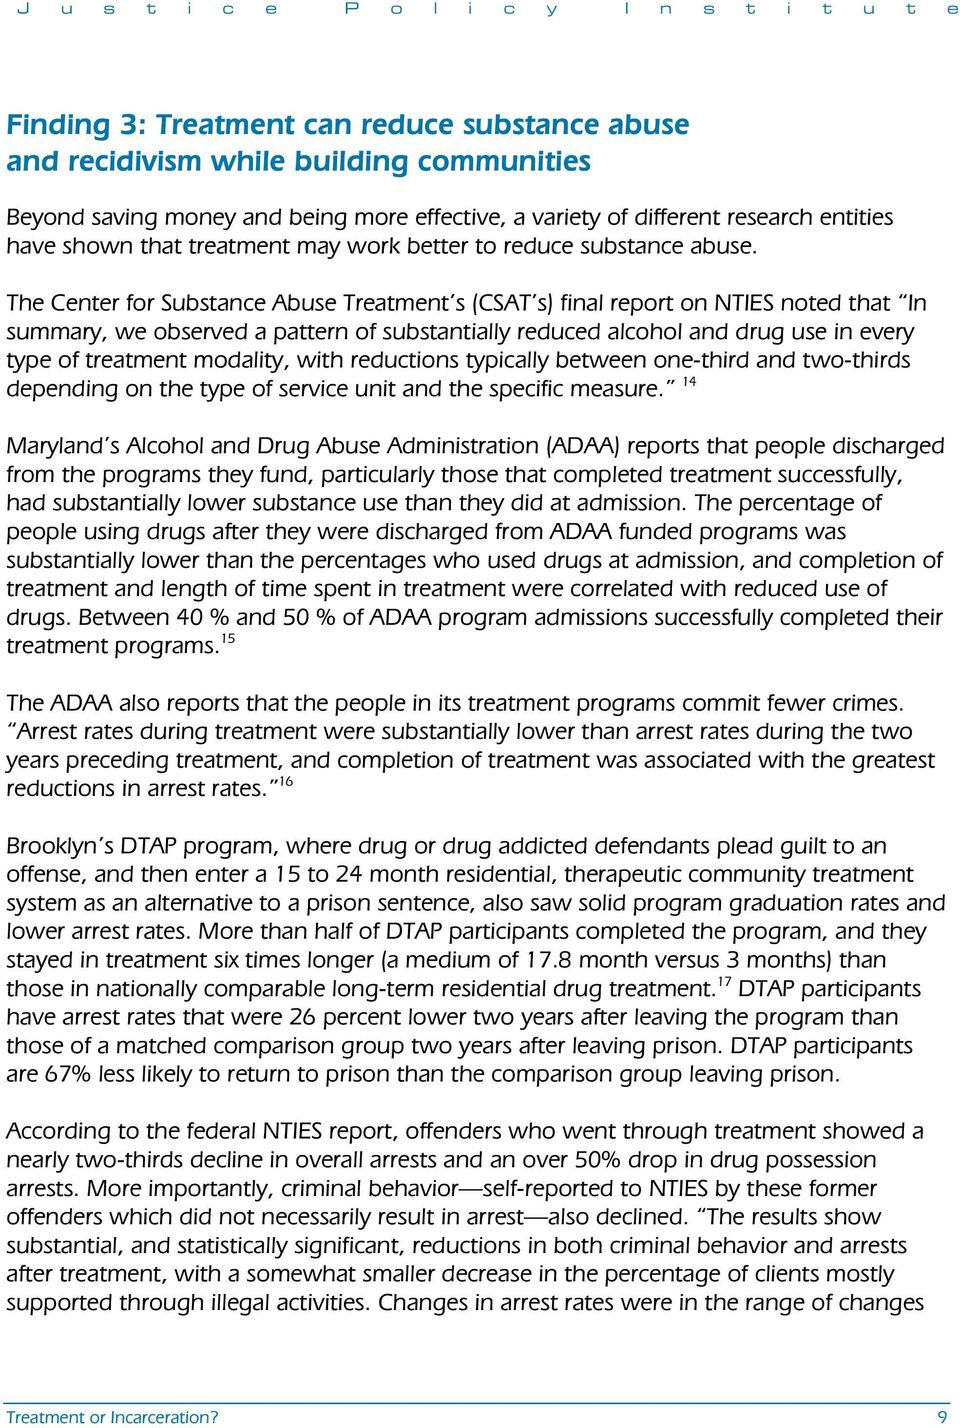 The Center for Substance Abuse Treatment s (CSAT s) final report on NTIES noted that In summary, we observed a pattern of substantially reduced alcohol and drug use in every type of treatment